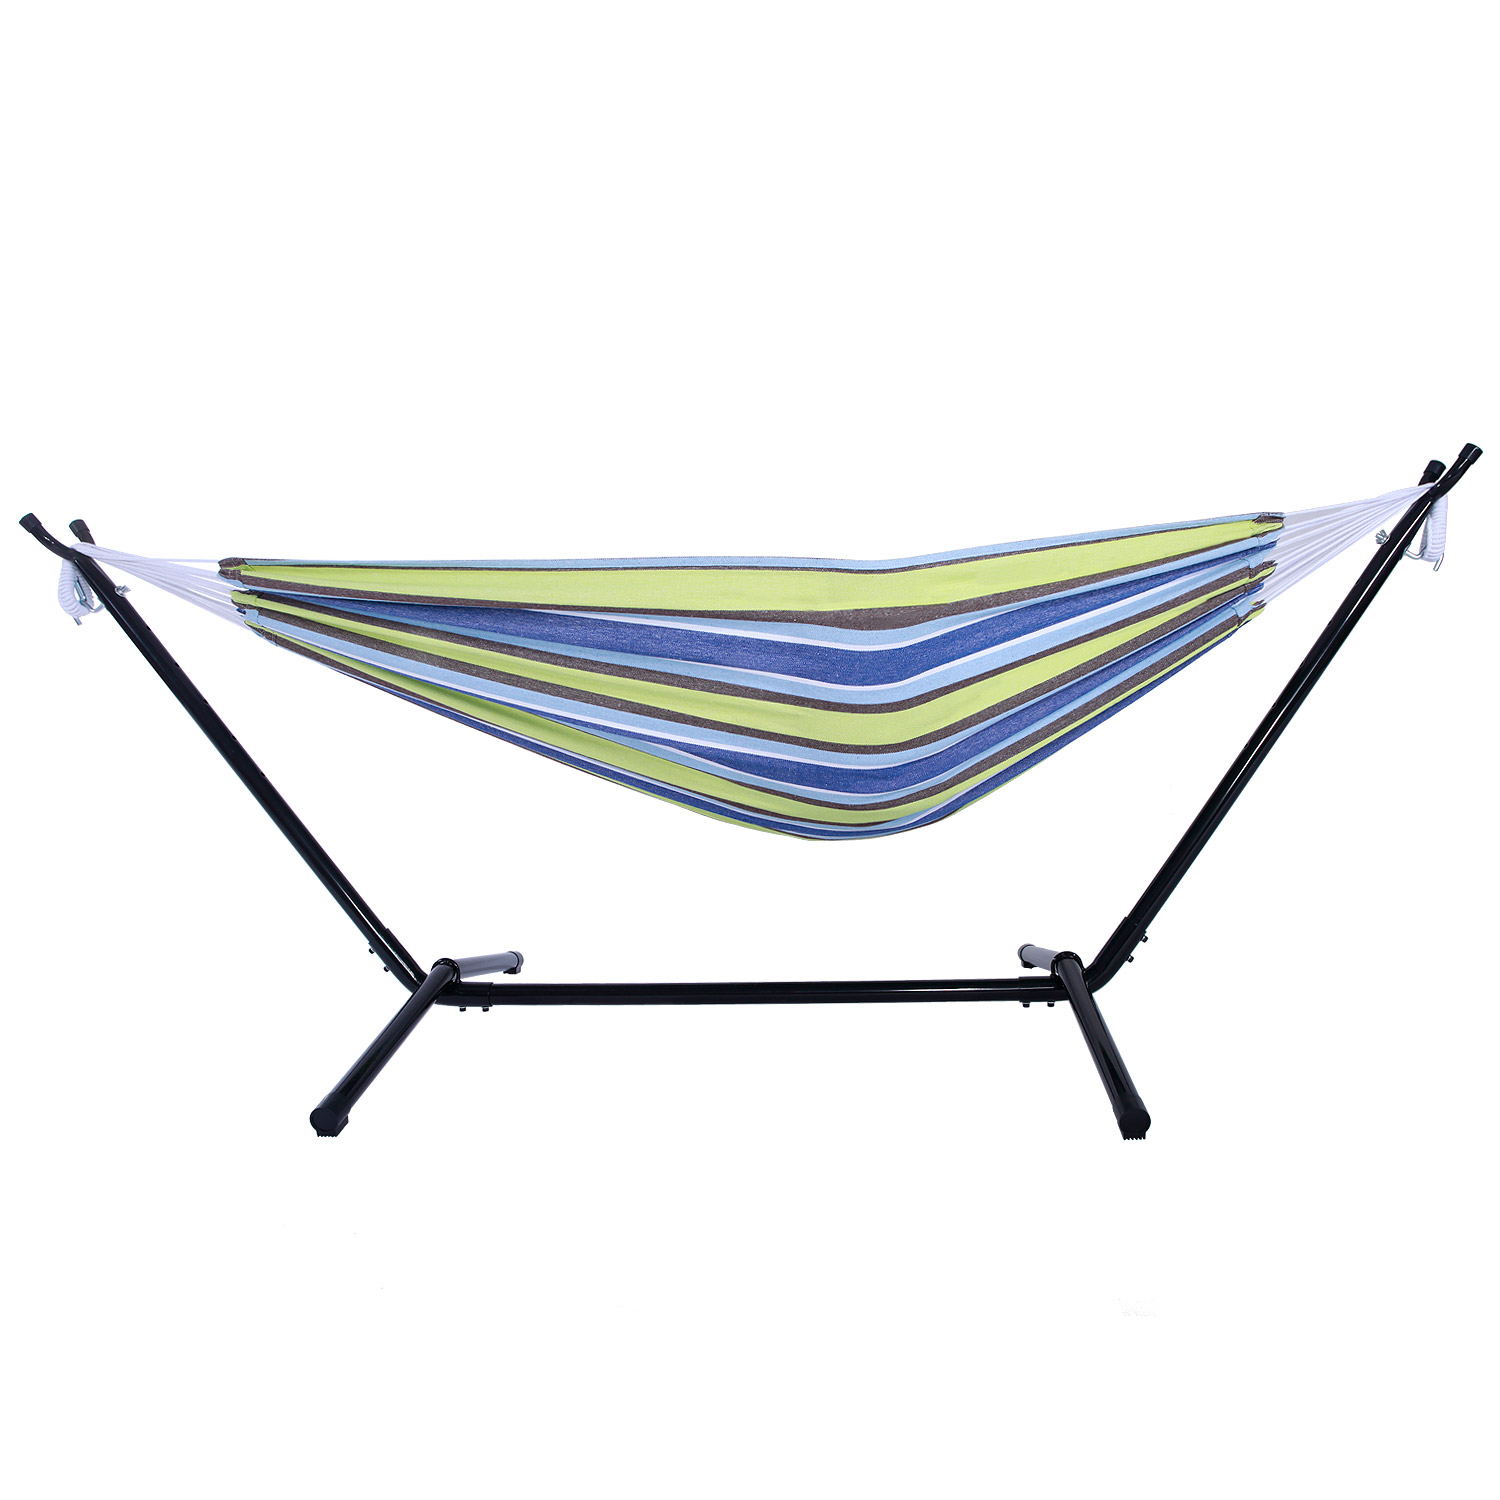 best snuggle partner about breaking the lbs couple holds for it any buying steel you portable to ideal can your hiking up review with s guide stand sunnydaze worrying camping without that hammock loves